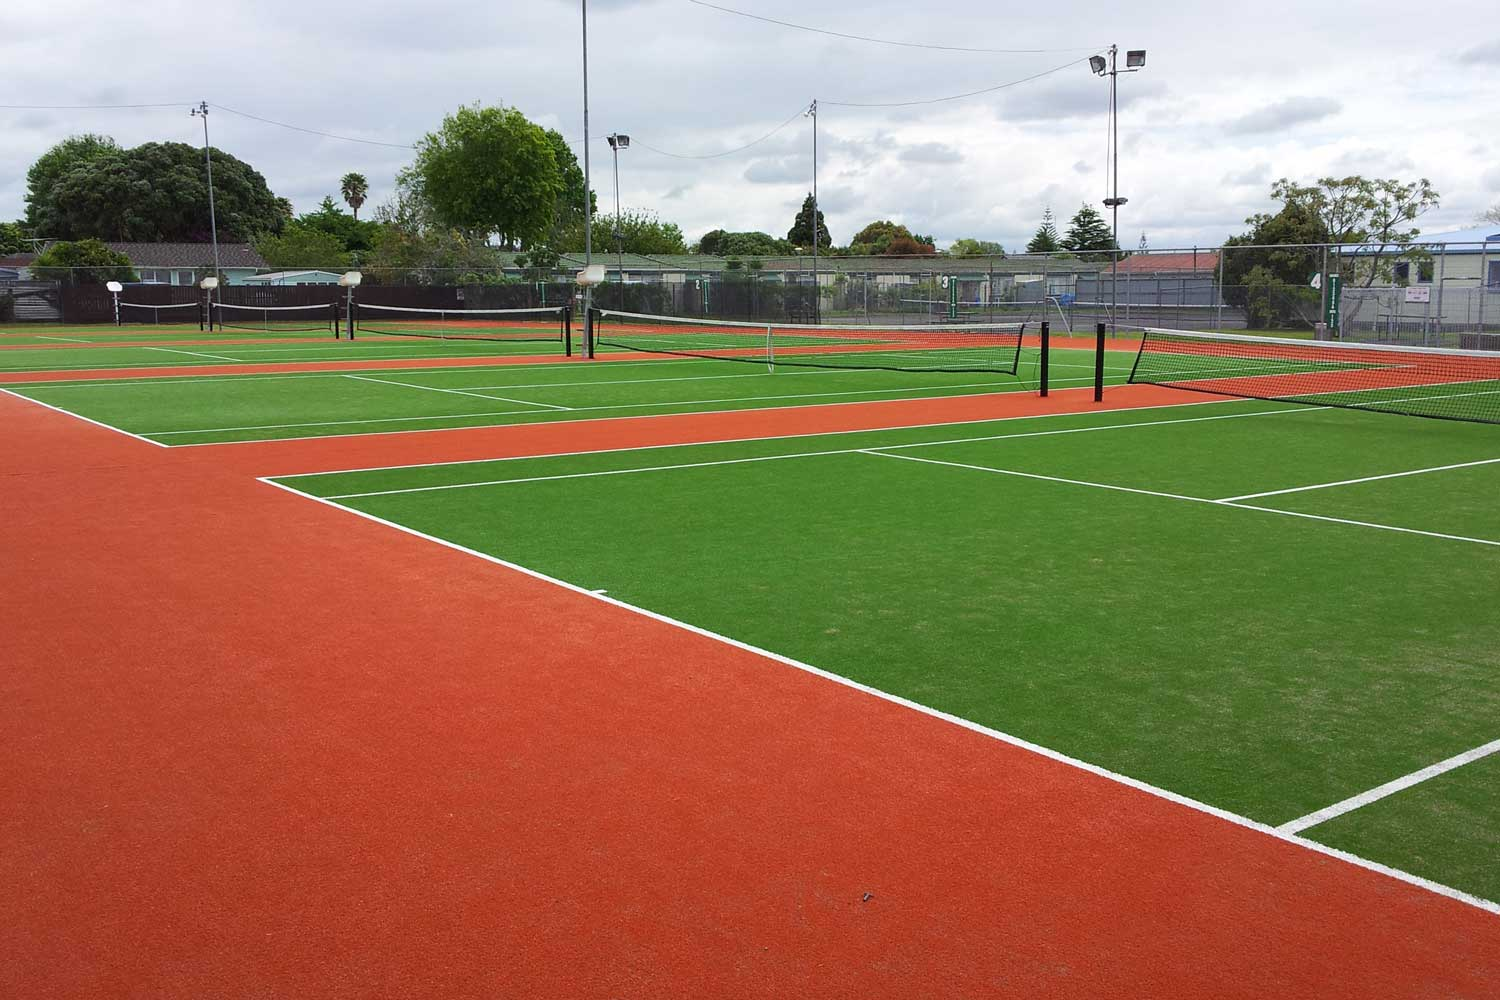 Te Atatu Tennis Club synthetic turf